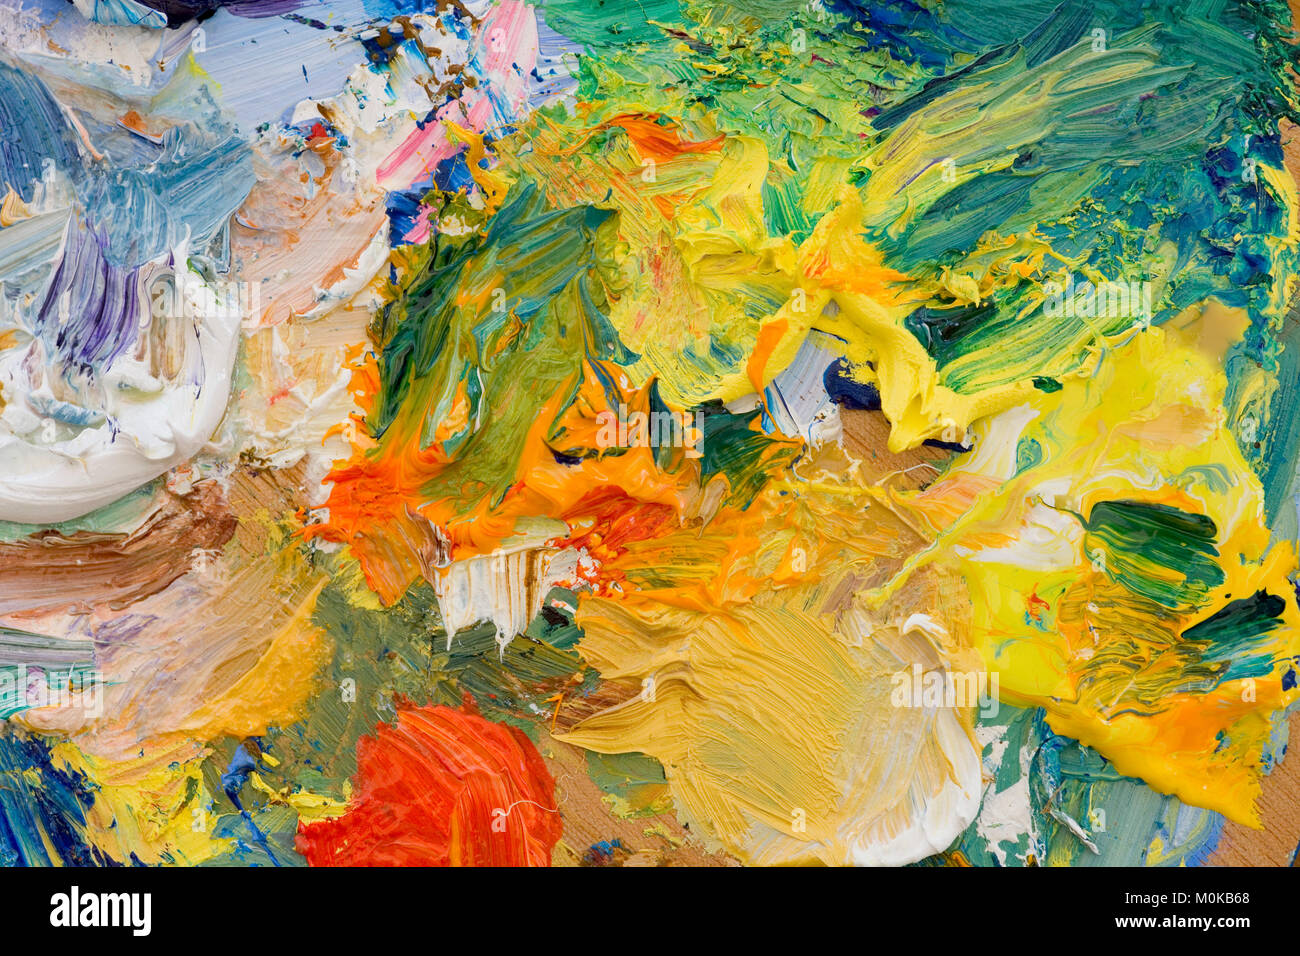 Artists oil paints multi coloured close up semi abstract - Stock Image